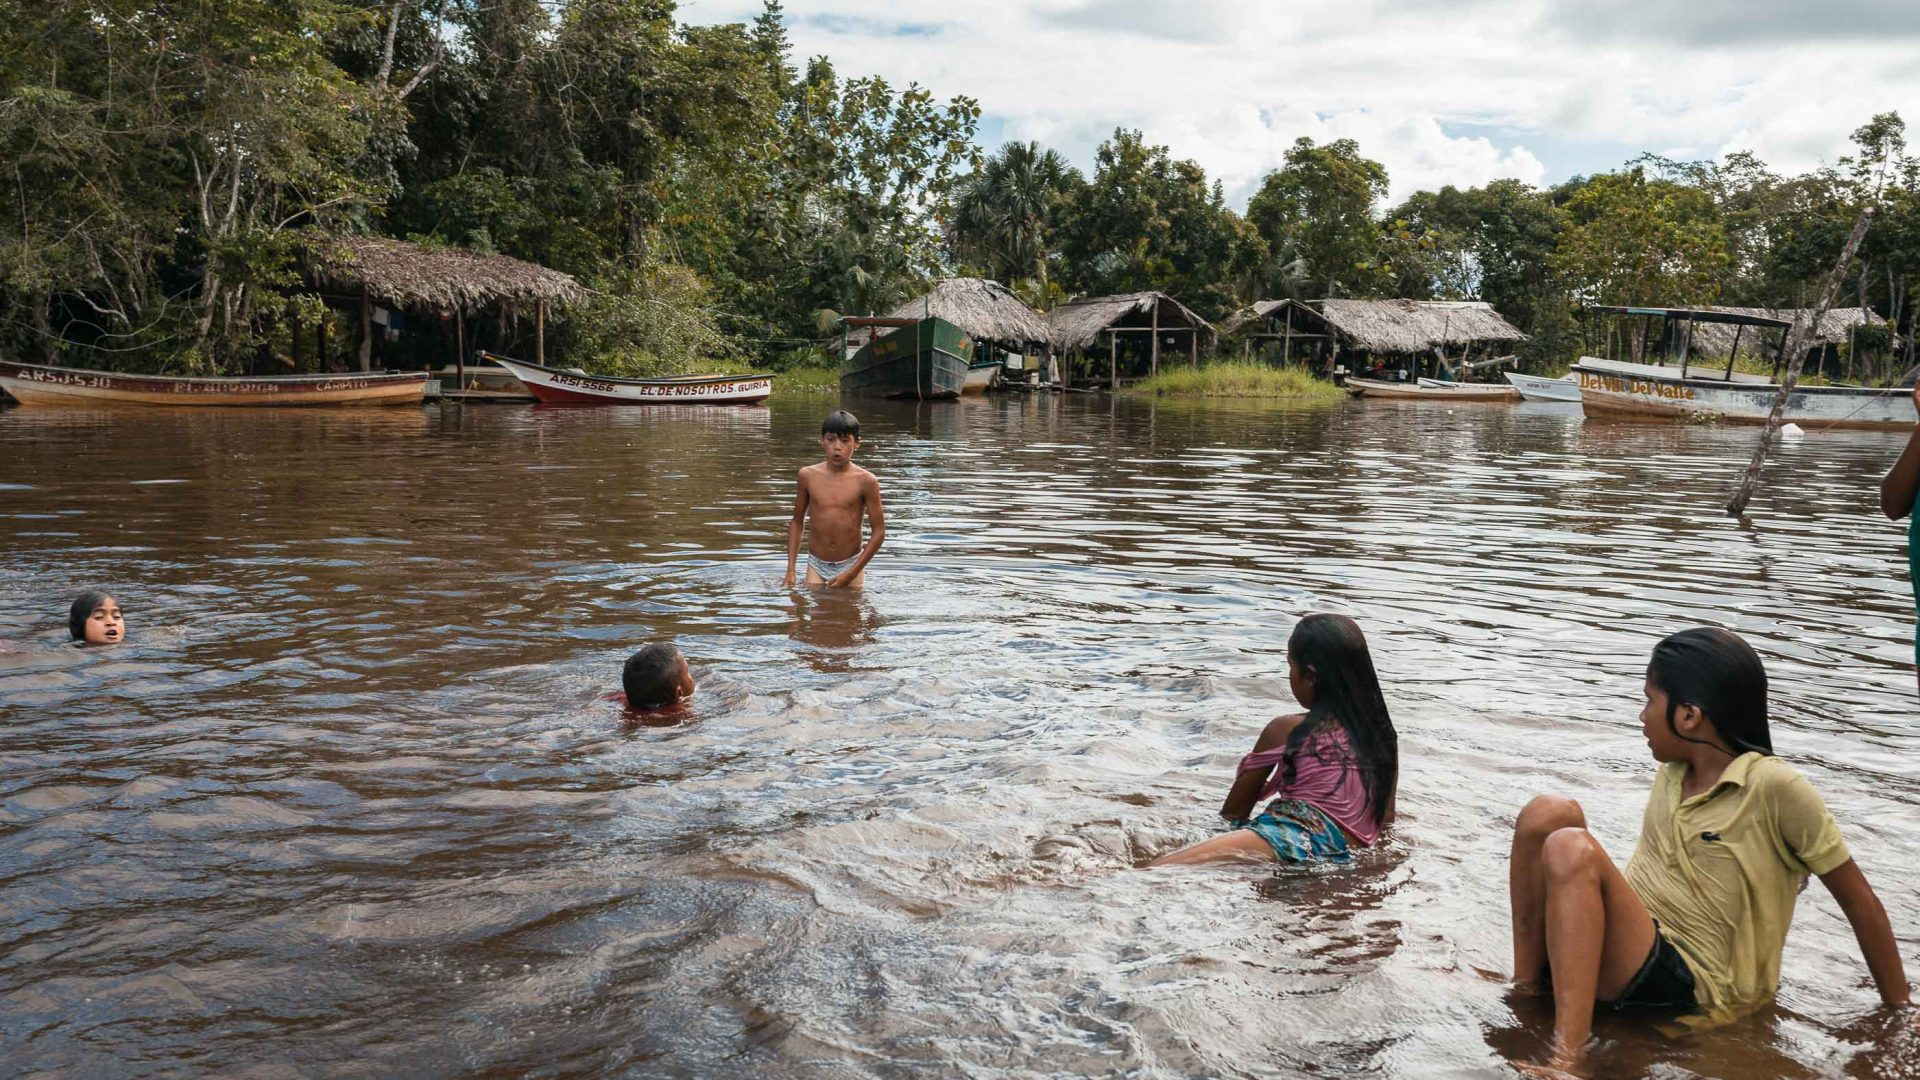 Warao children play on the waters of Venezuela's Orinoco River.